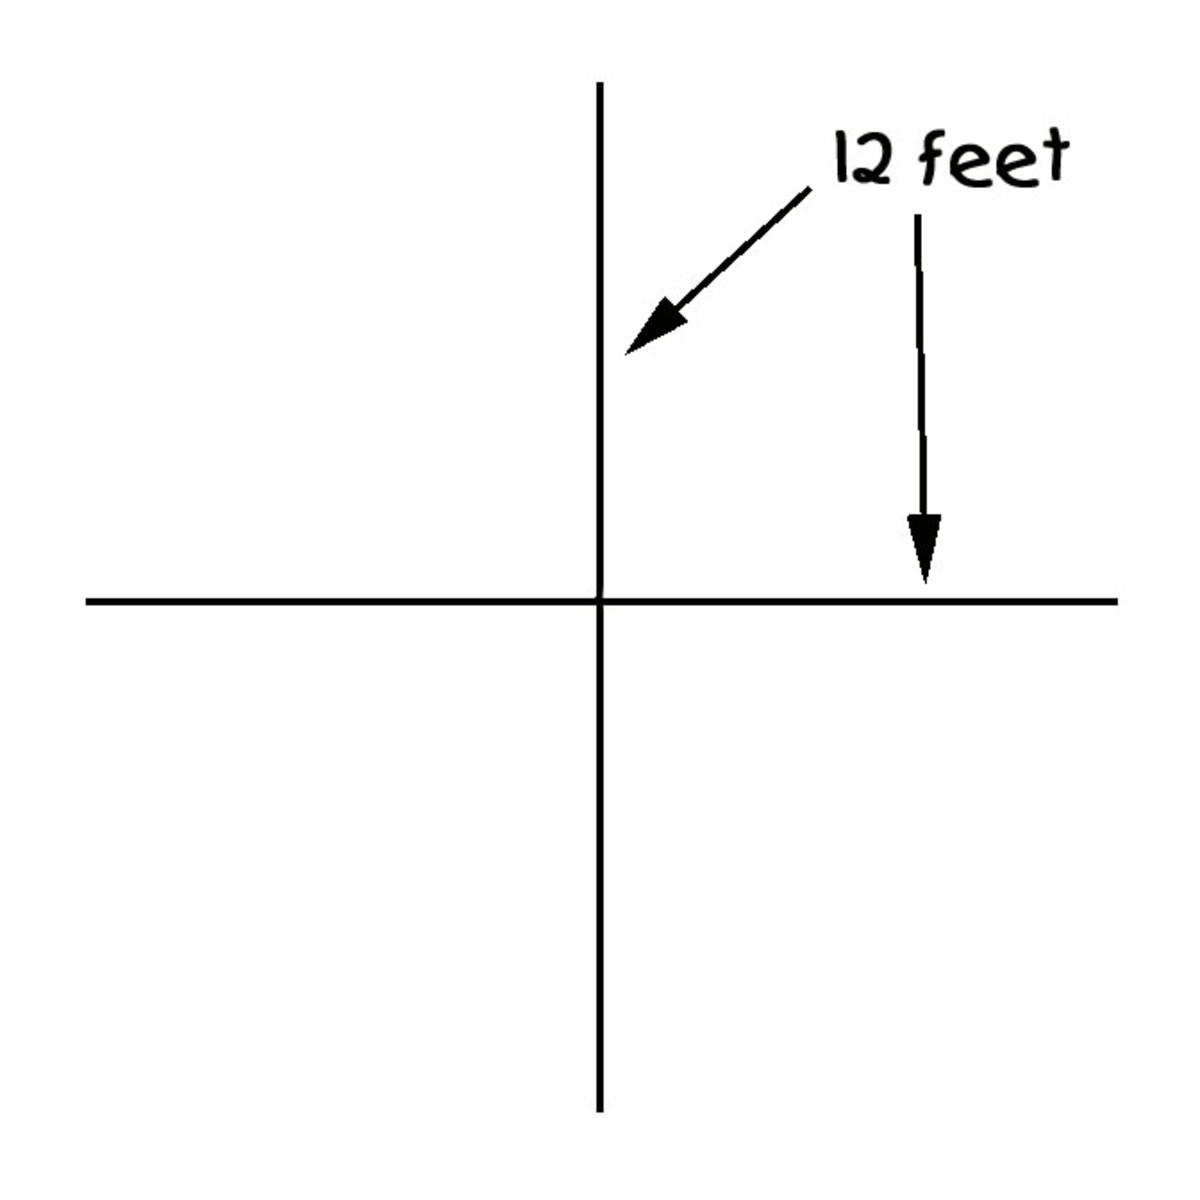 Draw two 12 foot legs